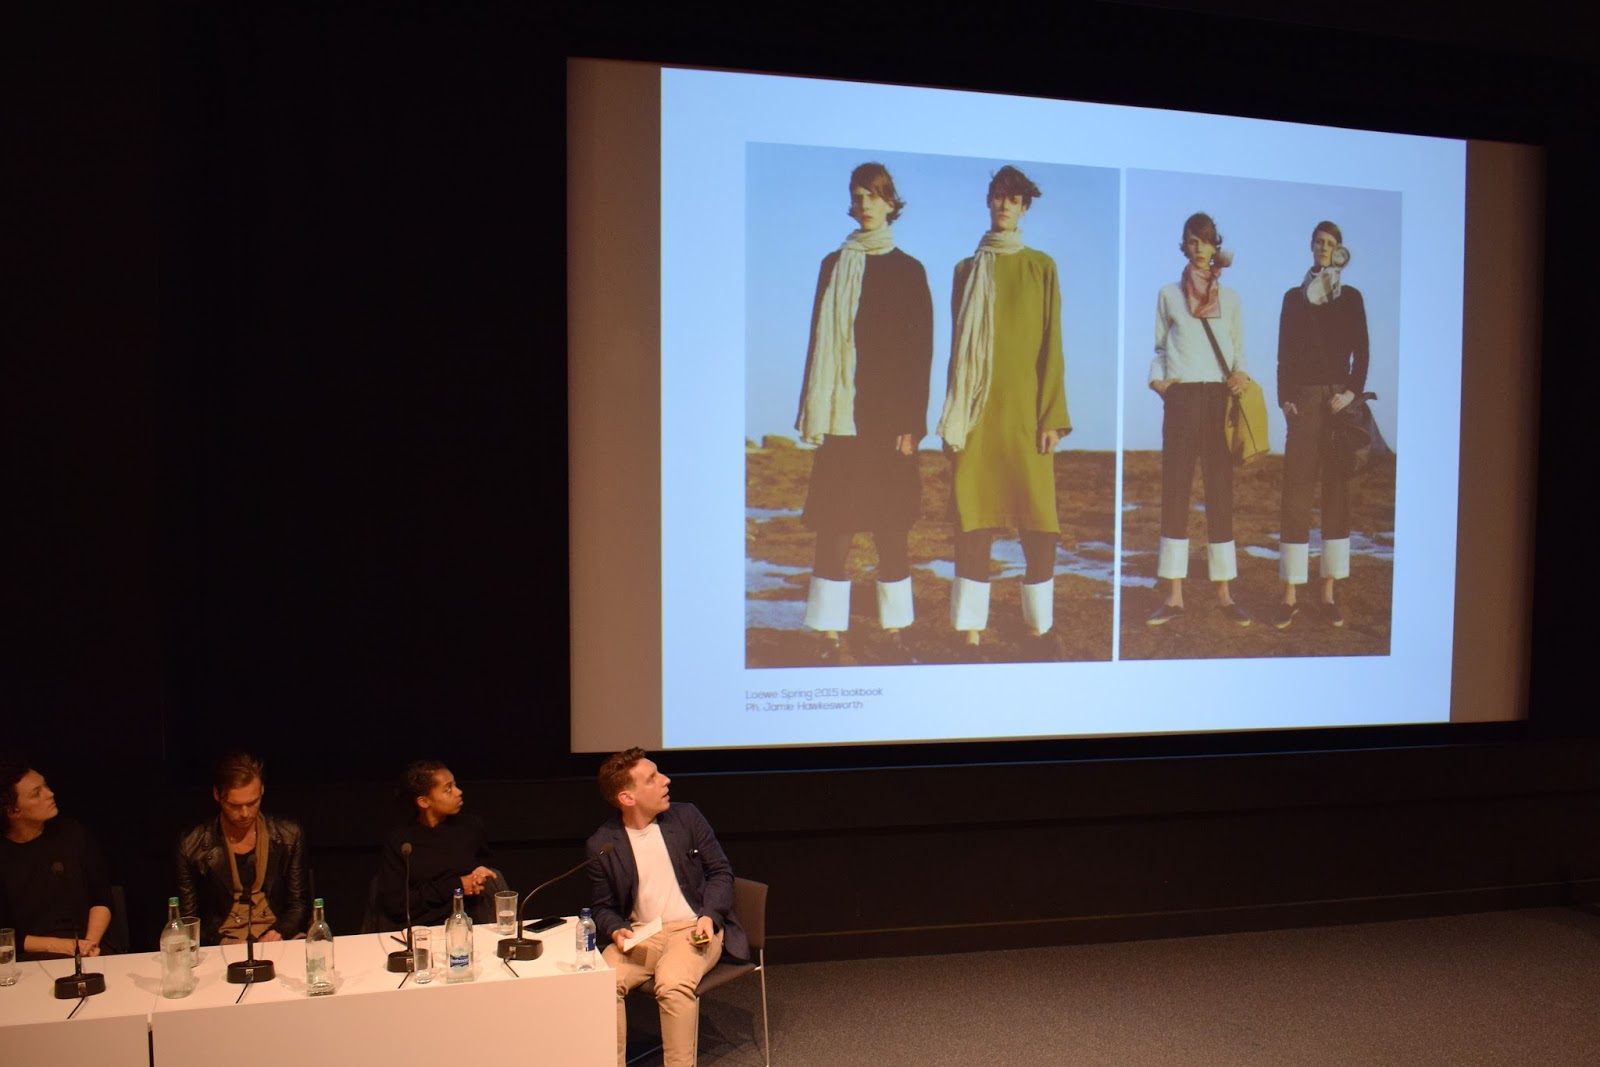 Edinburgh International Fashion Festival, gender in fashion discussion, symposium on menswear fashion